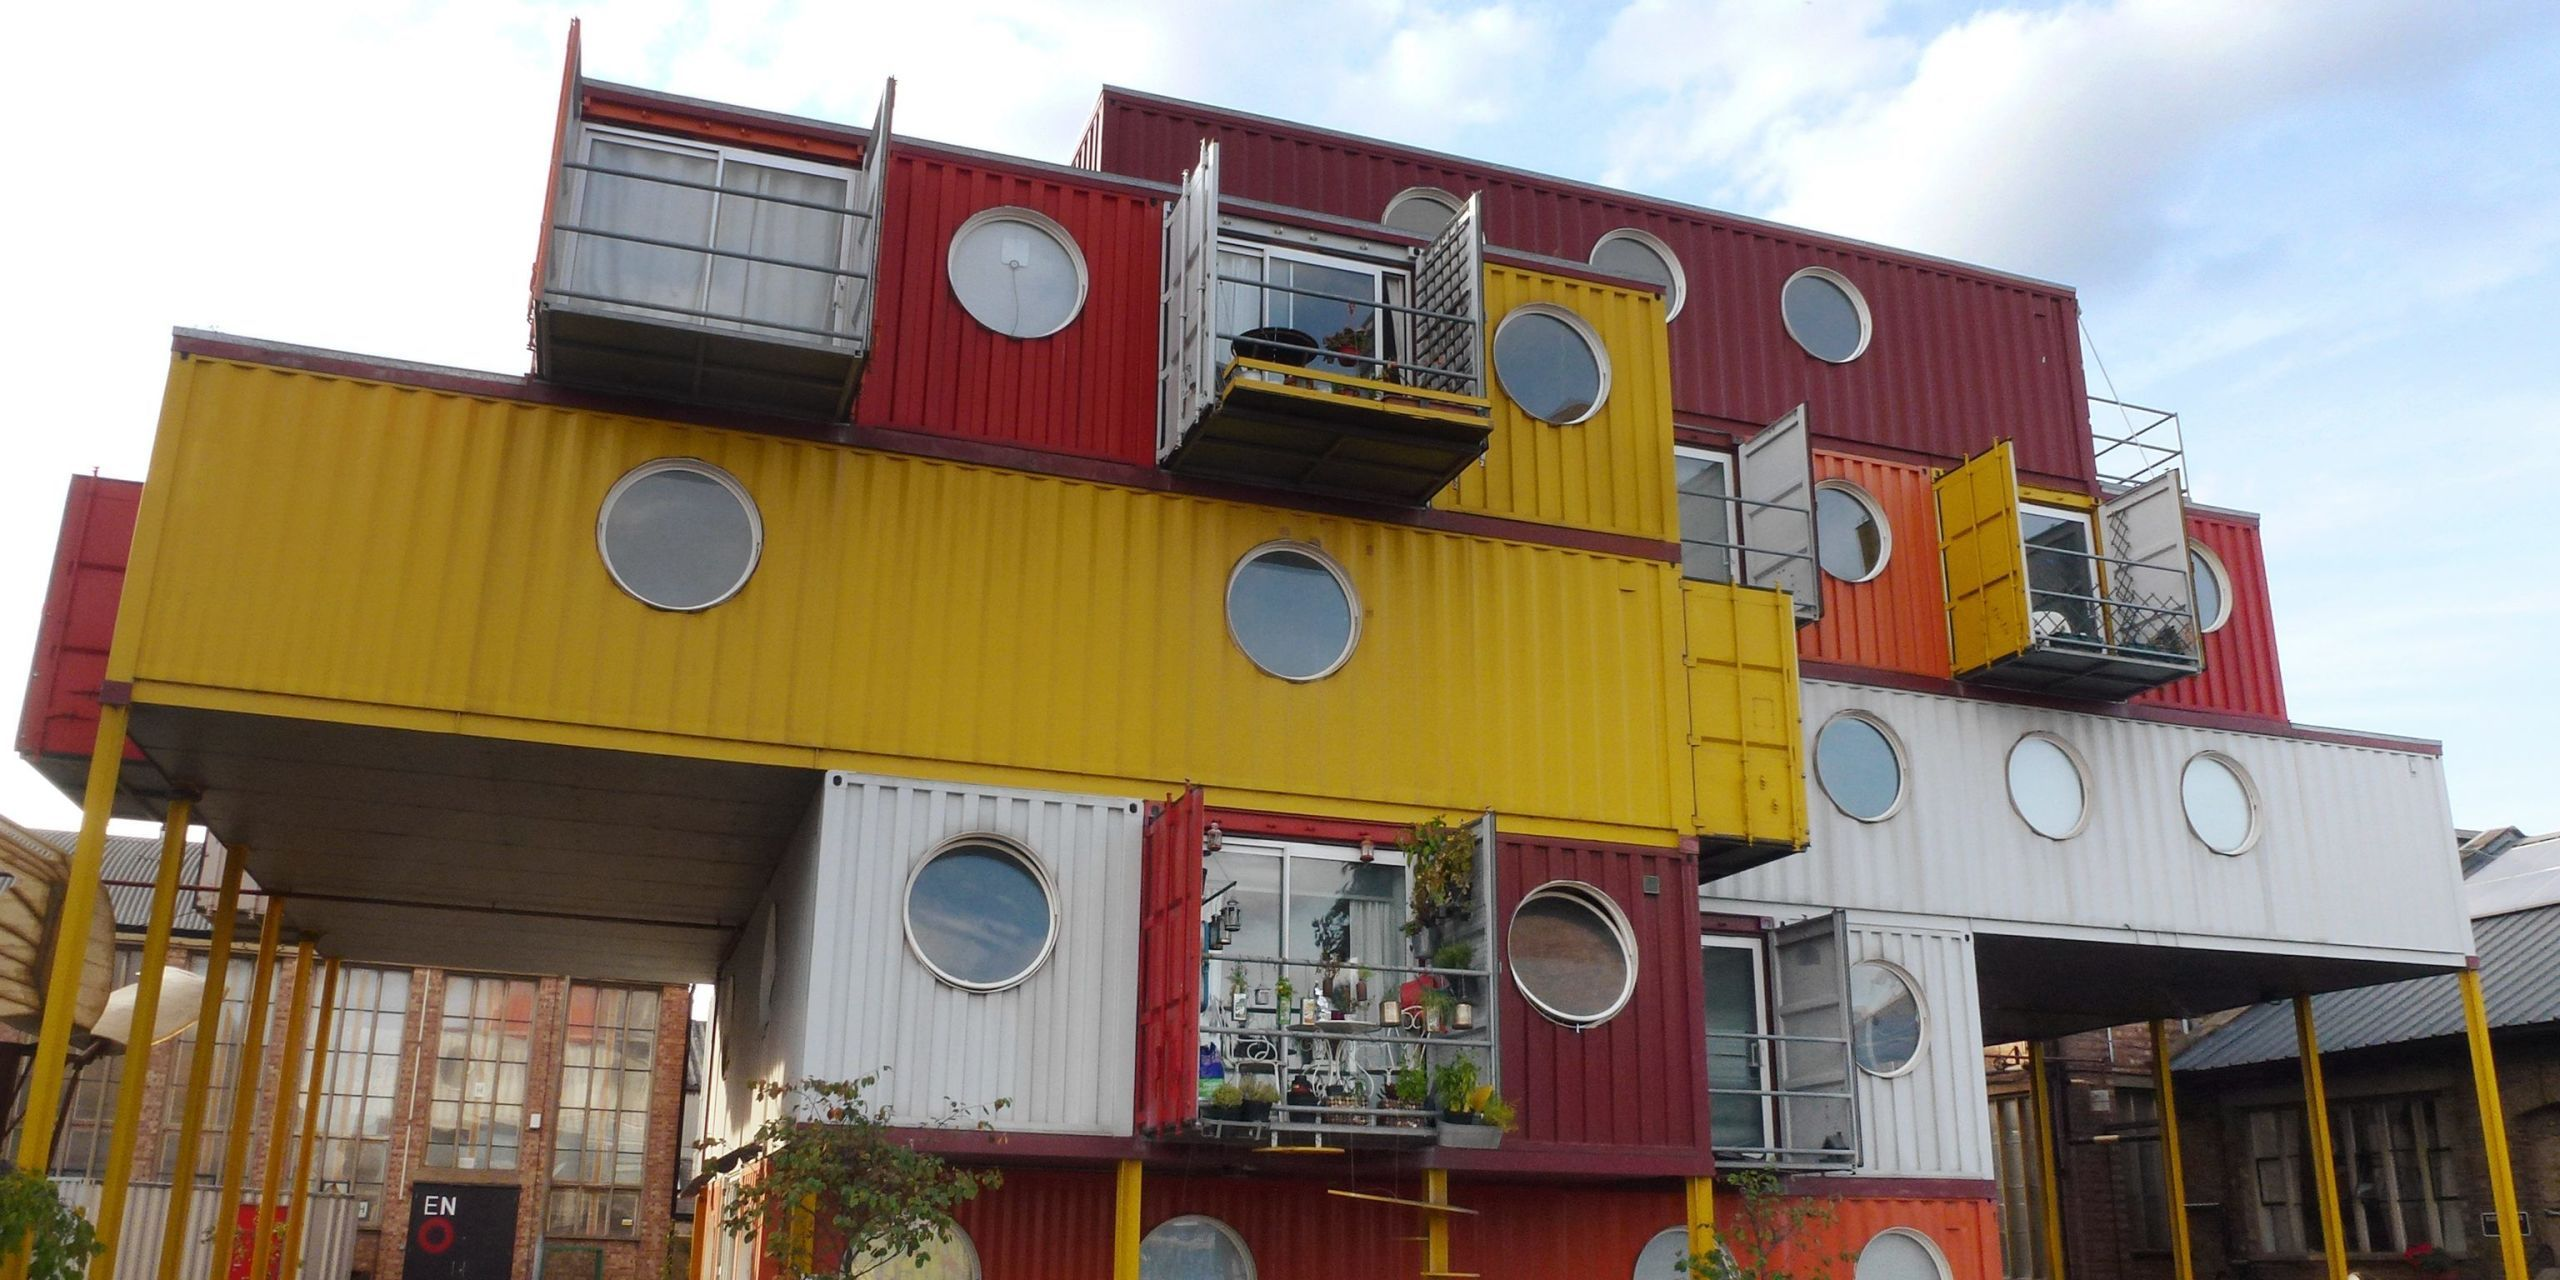 image & 45 Shipping Container Homes \u0026 Offices - Cargo Container Houses